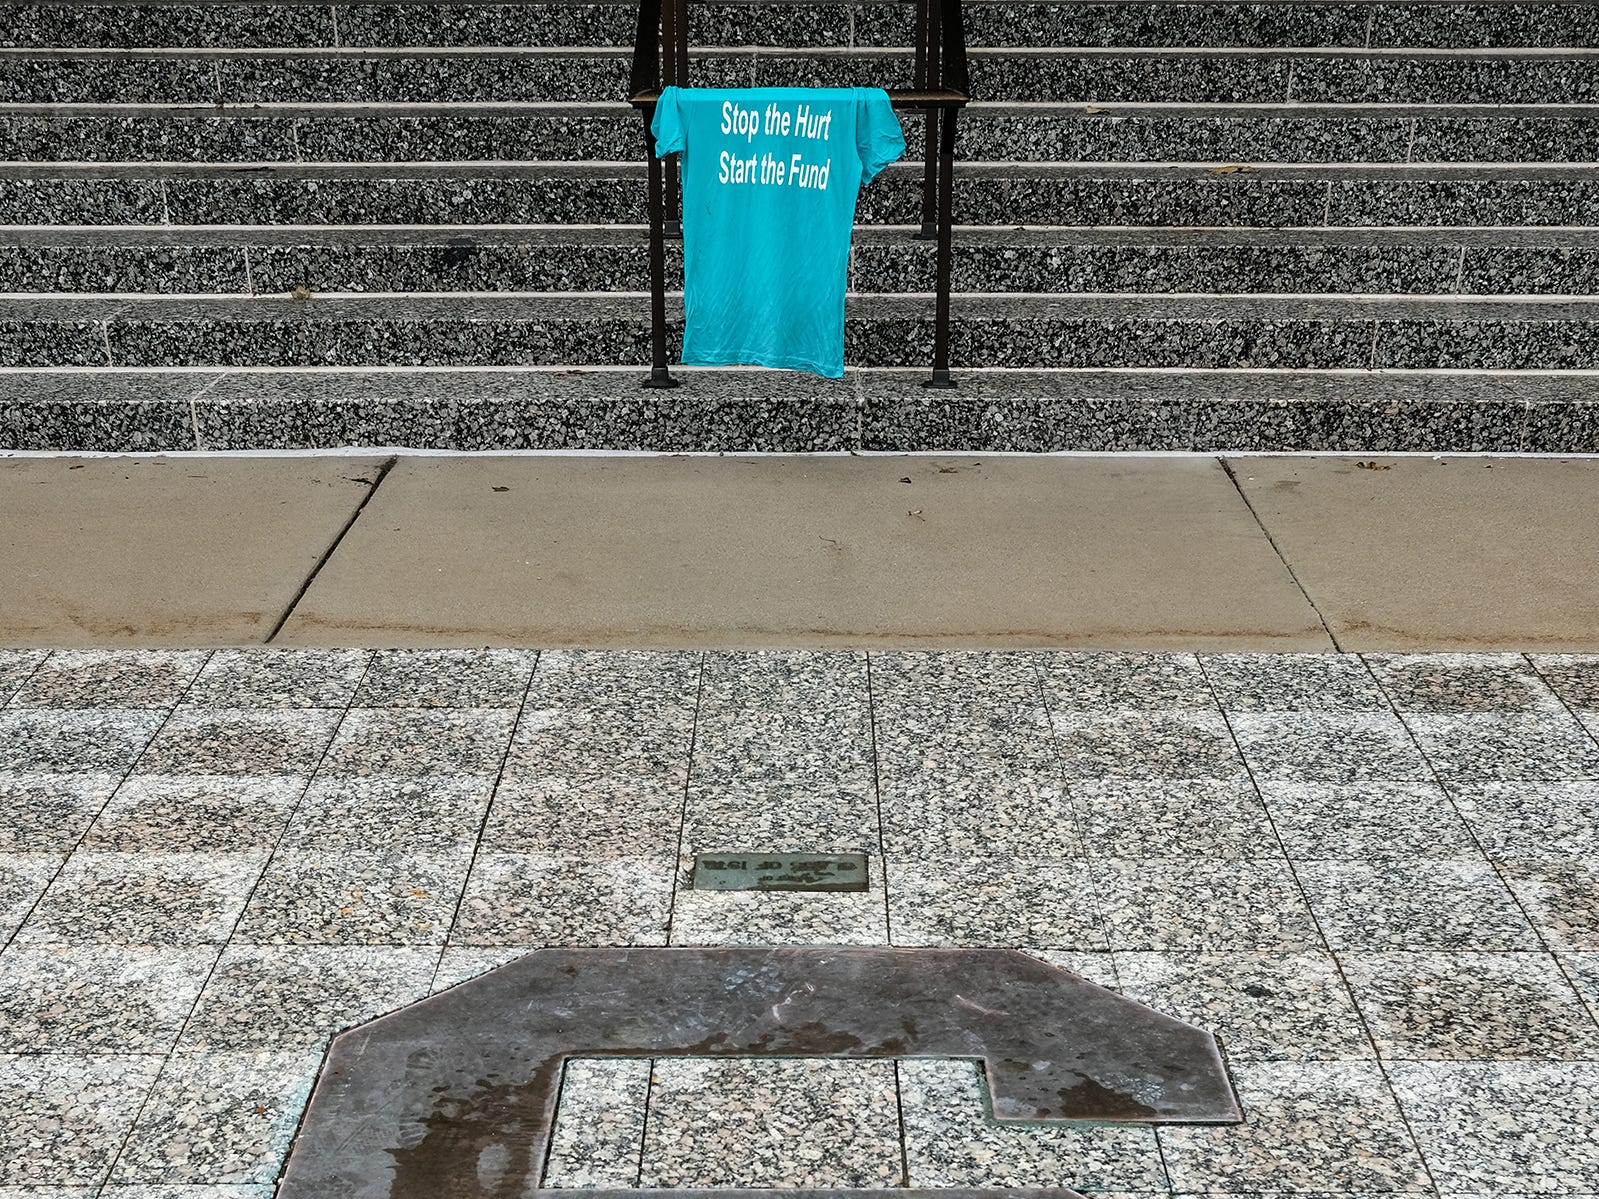 A teal colored t-shirt is placed in front of the MSU Administration Building after a MSU Board of Trustees meeting Friday, Dec. 14, 2018. Nassar survivors and supporters want the Board to reinstate the fund to survivors.